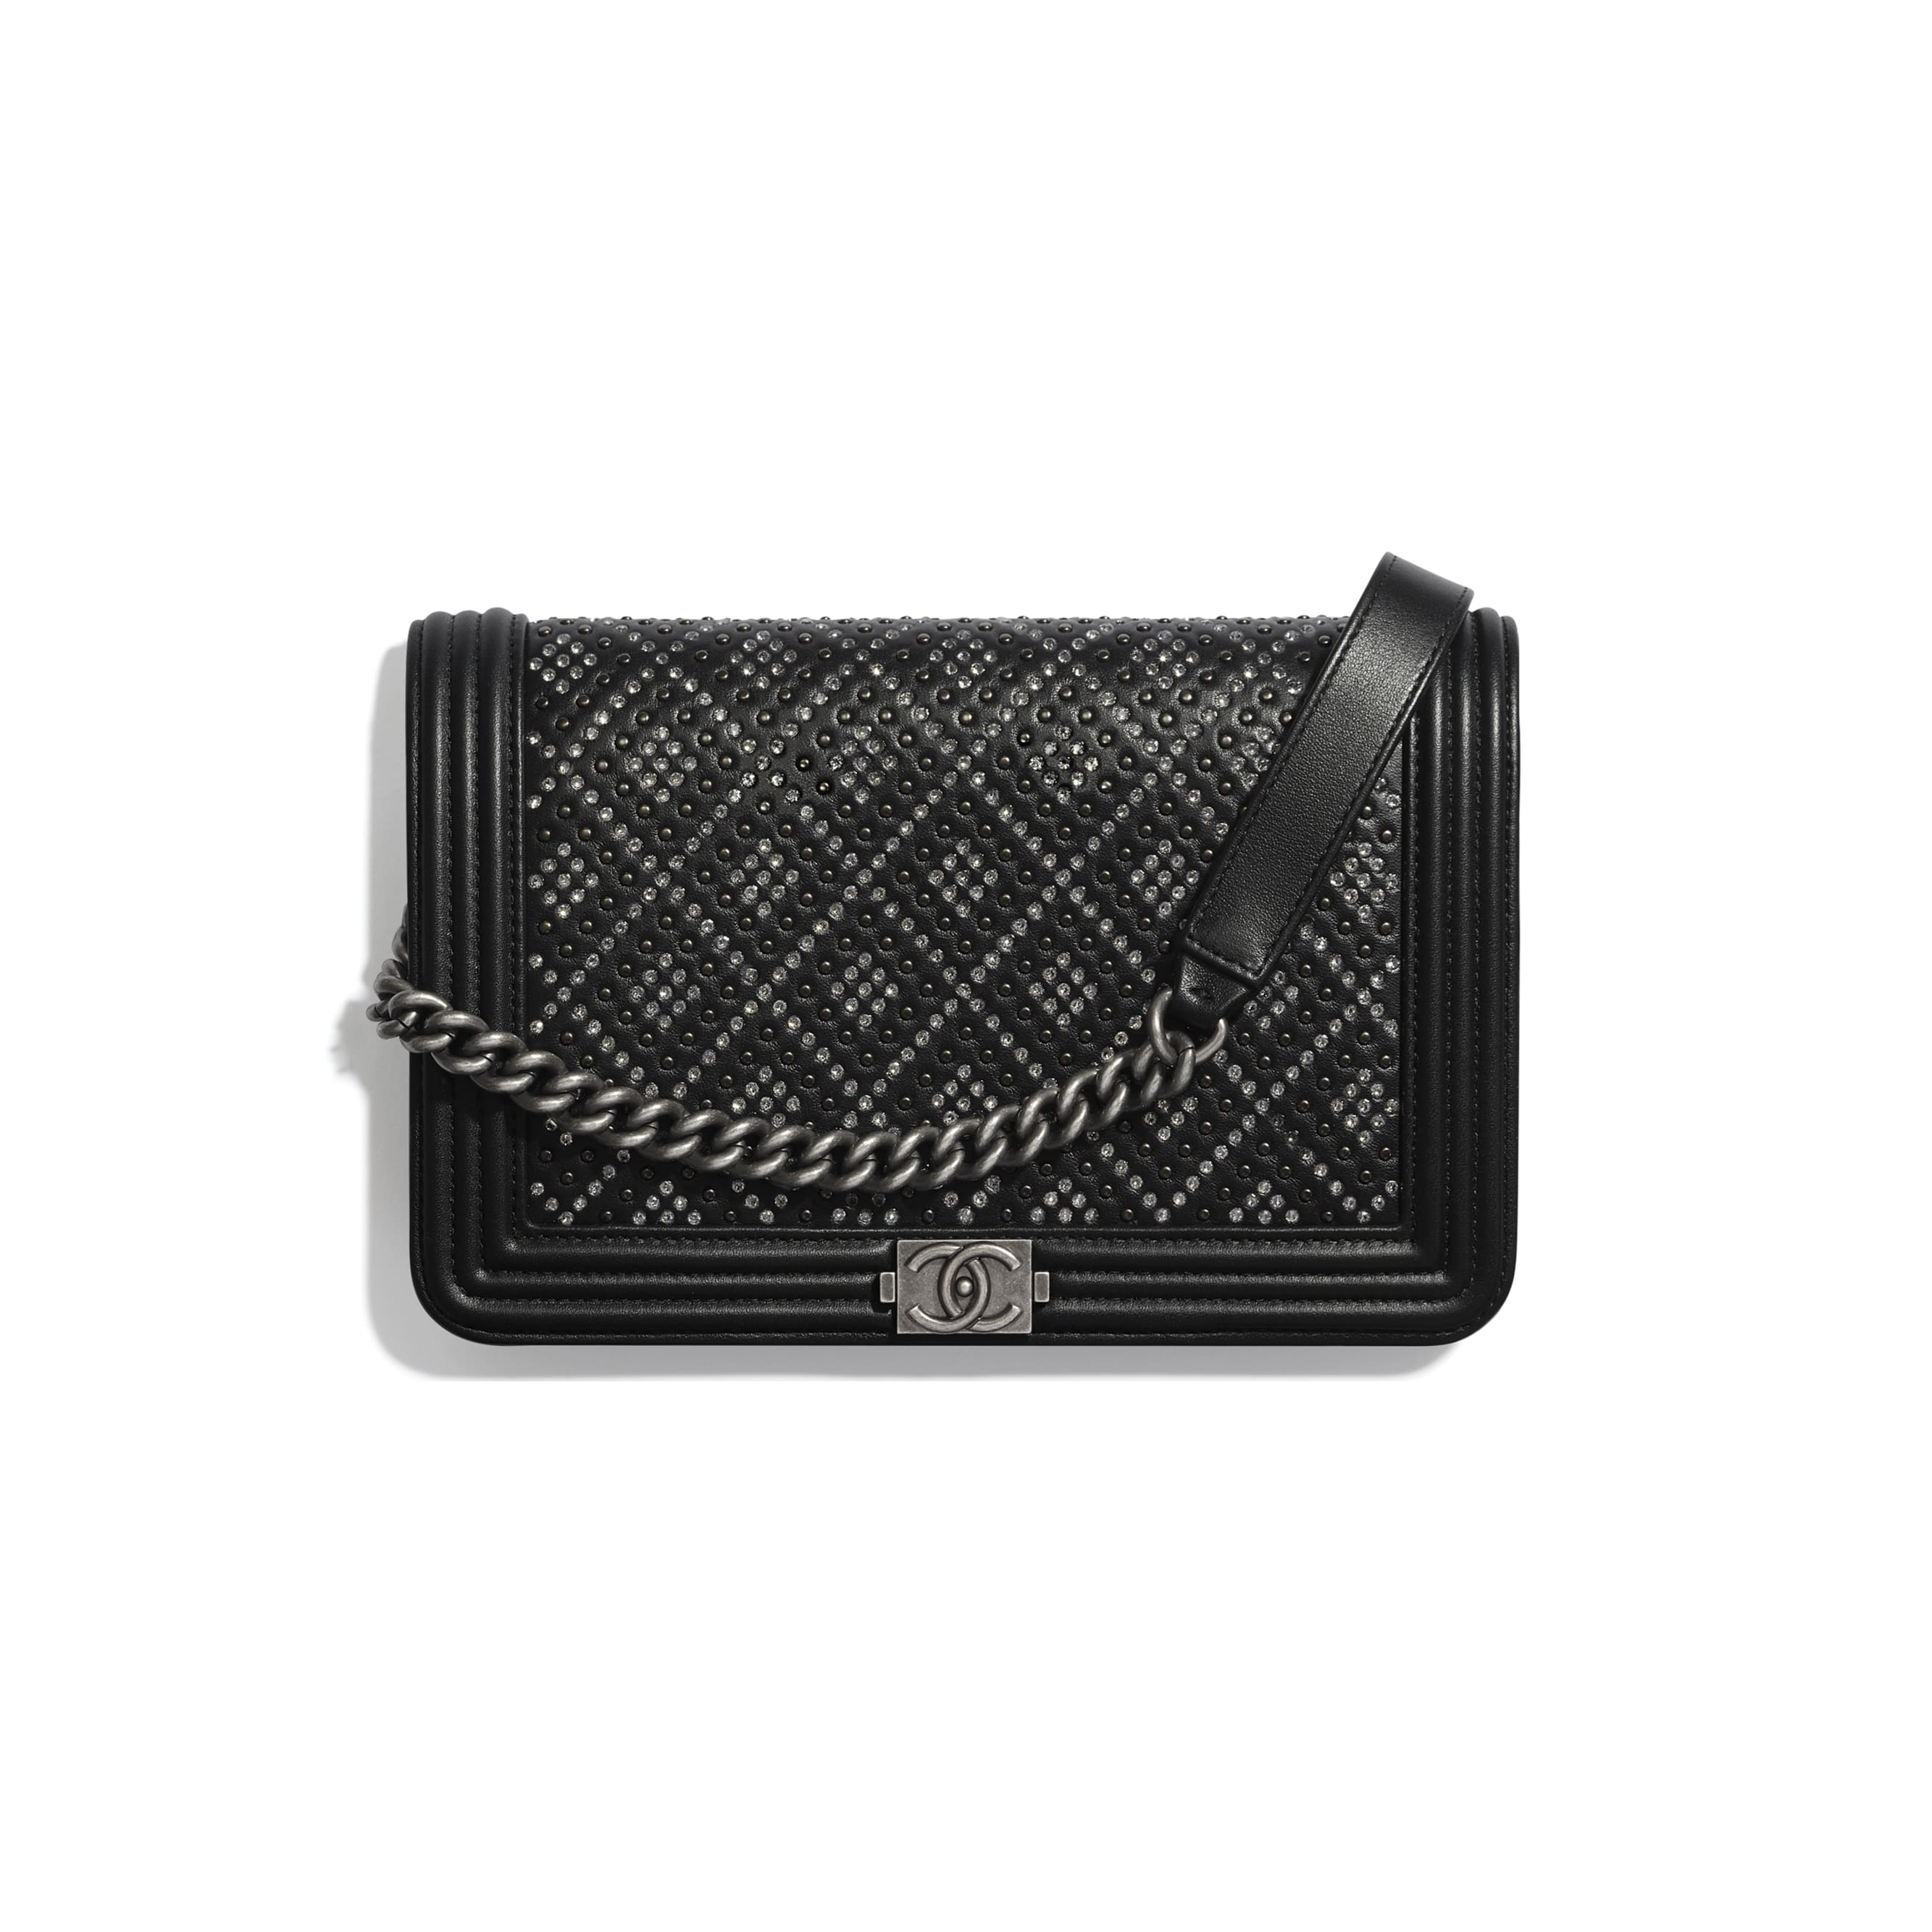 BOY CHANEL Wallet On Chain - Black - Calfskin, Studs, Diamanté & Ruthenium-Finish Metal - CHANEL - Default view - see standard sized version